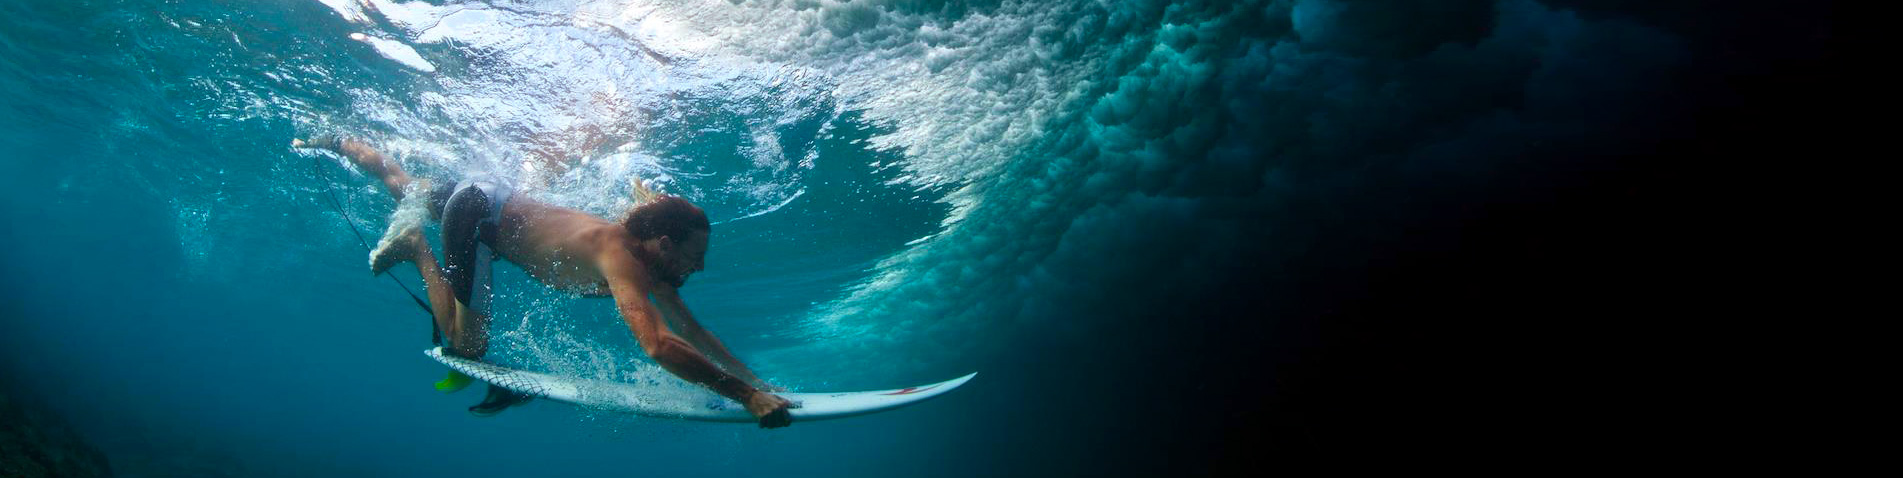 Maldives Luxury Surf Guide